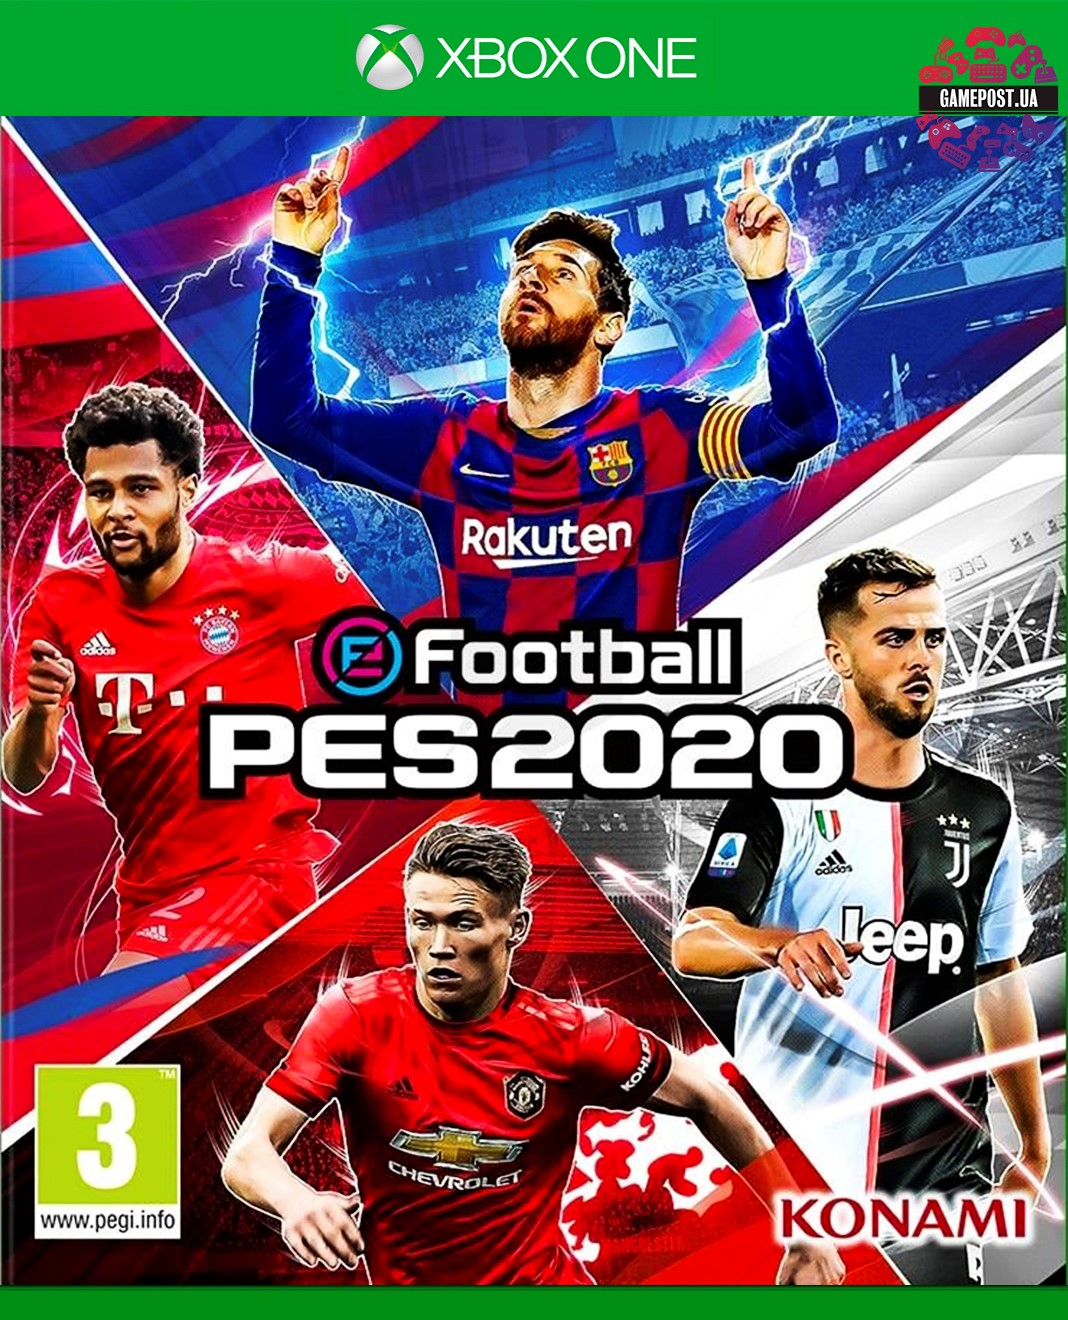 eFootball PES 2020 / XBOX ONE, Series X|S 🏅🏅🏅